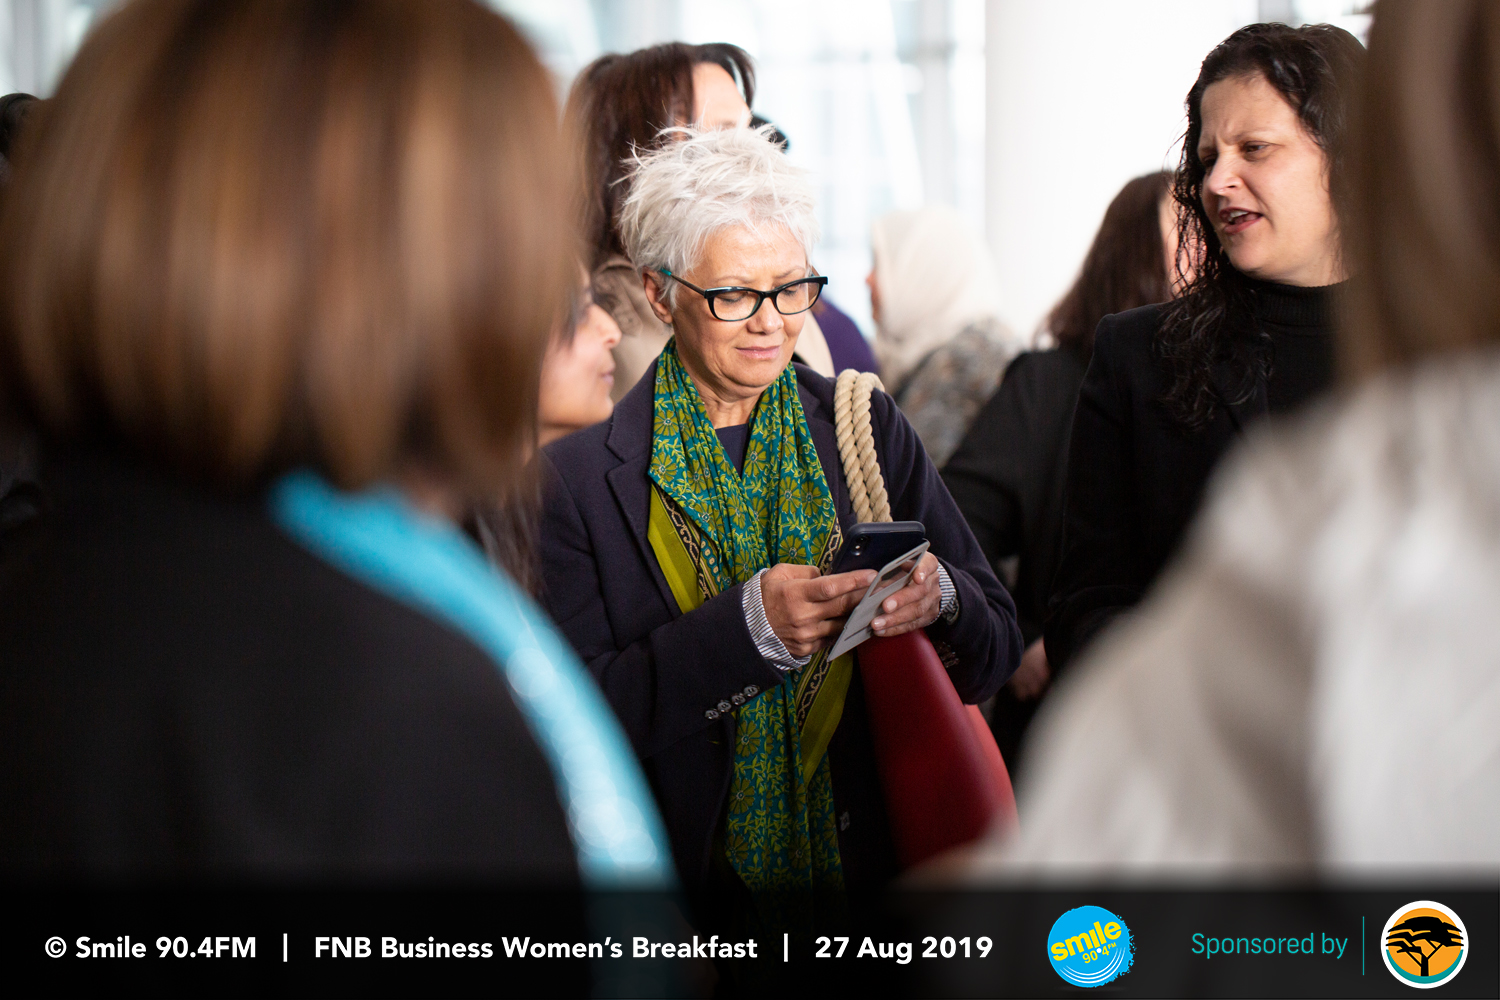 FNB Business Women's Breakfast in Association with Smile 90.4FM